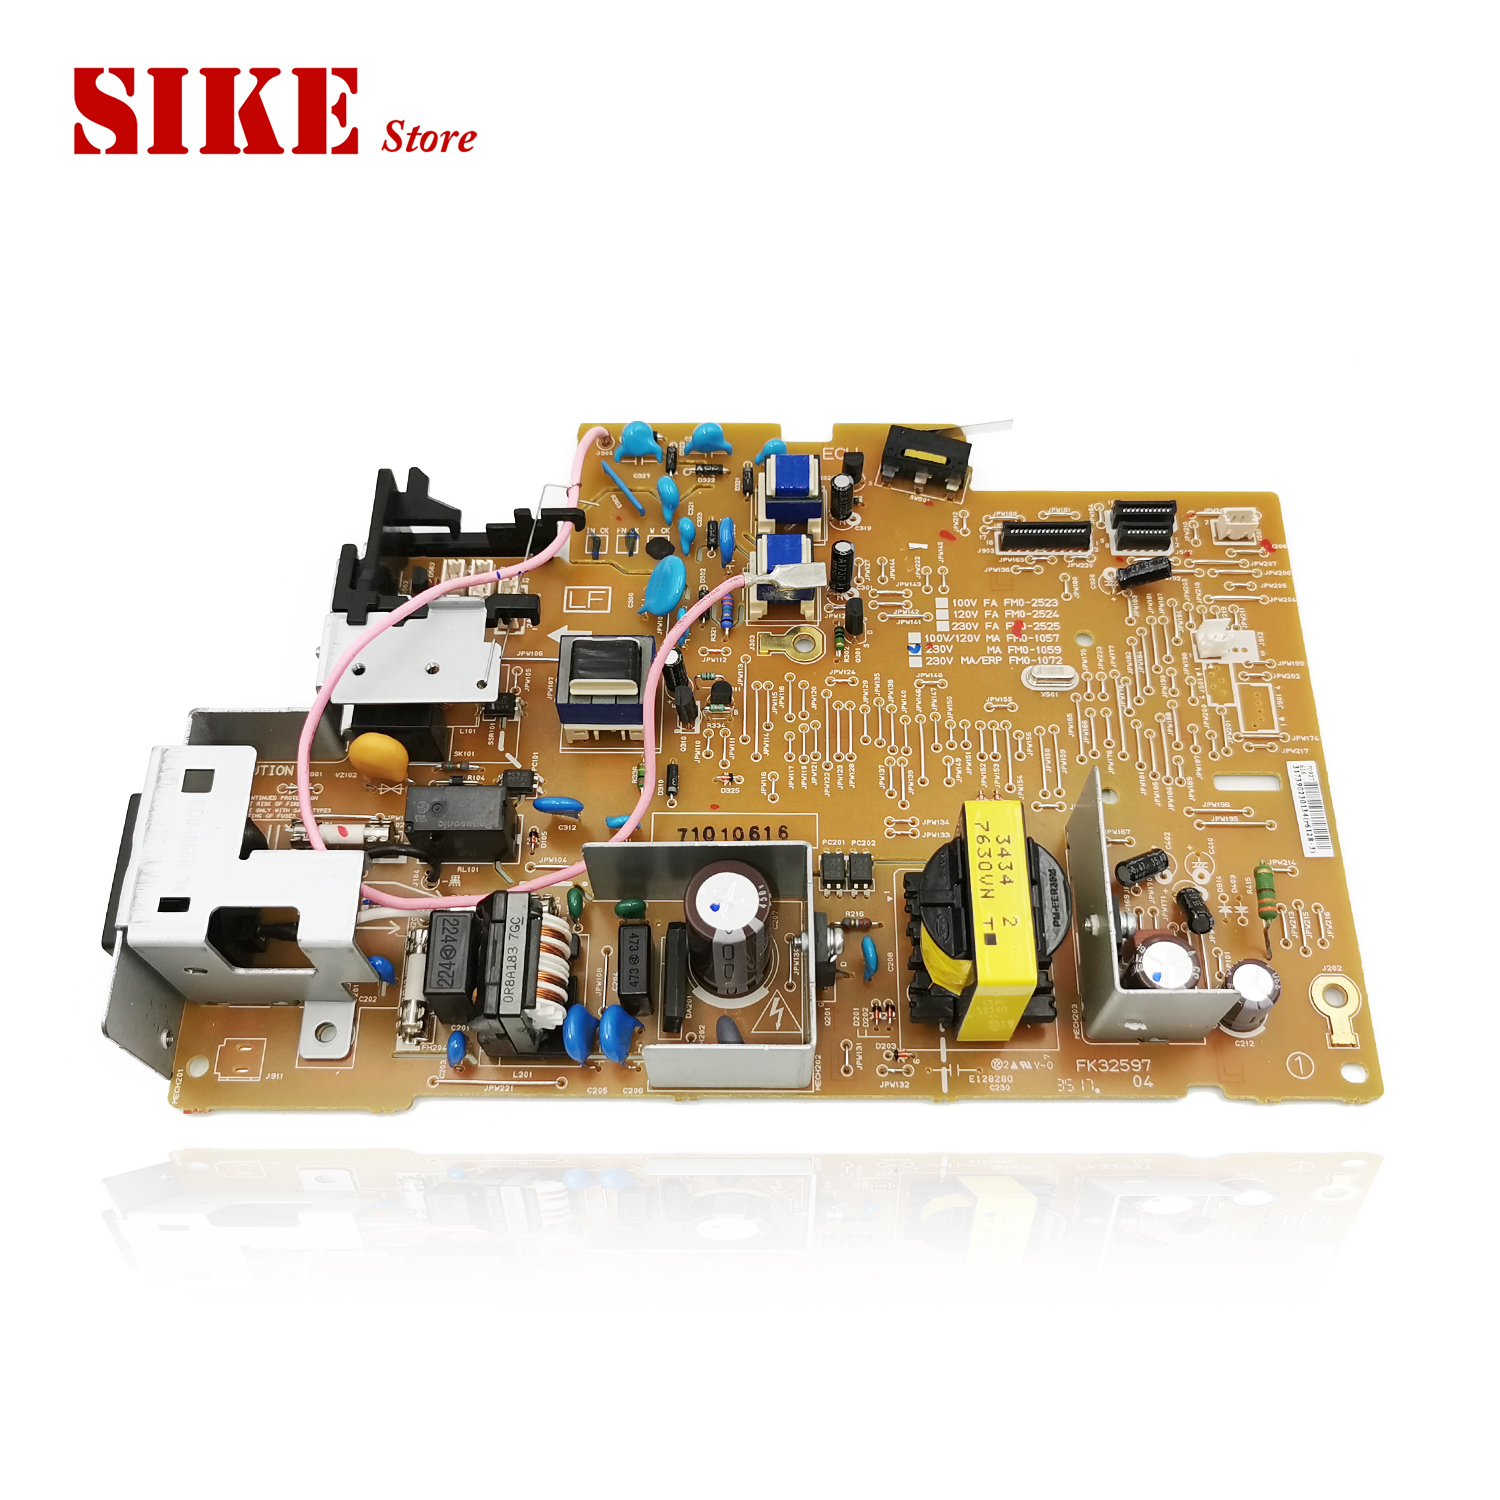 LaserJet Engine Control Power Board For Canon MF3010 MF 3010 FM0-1059 FM0-1057 Voltage Power Supply Board image